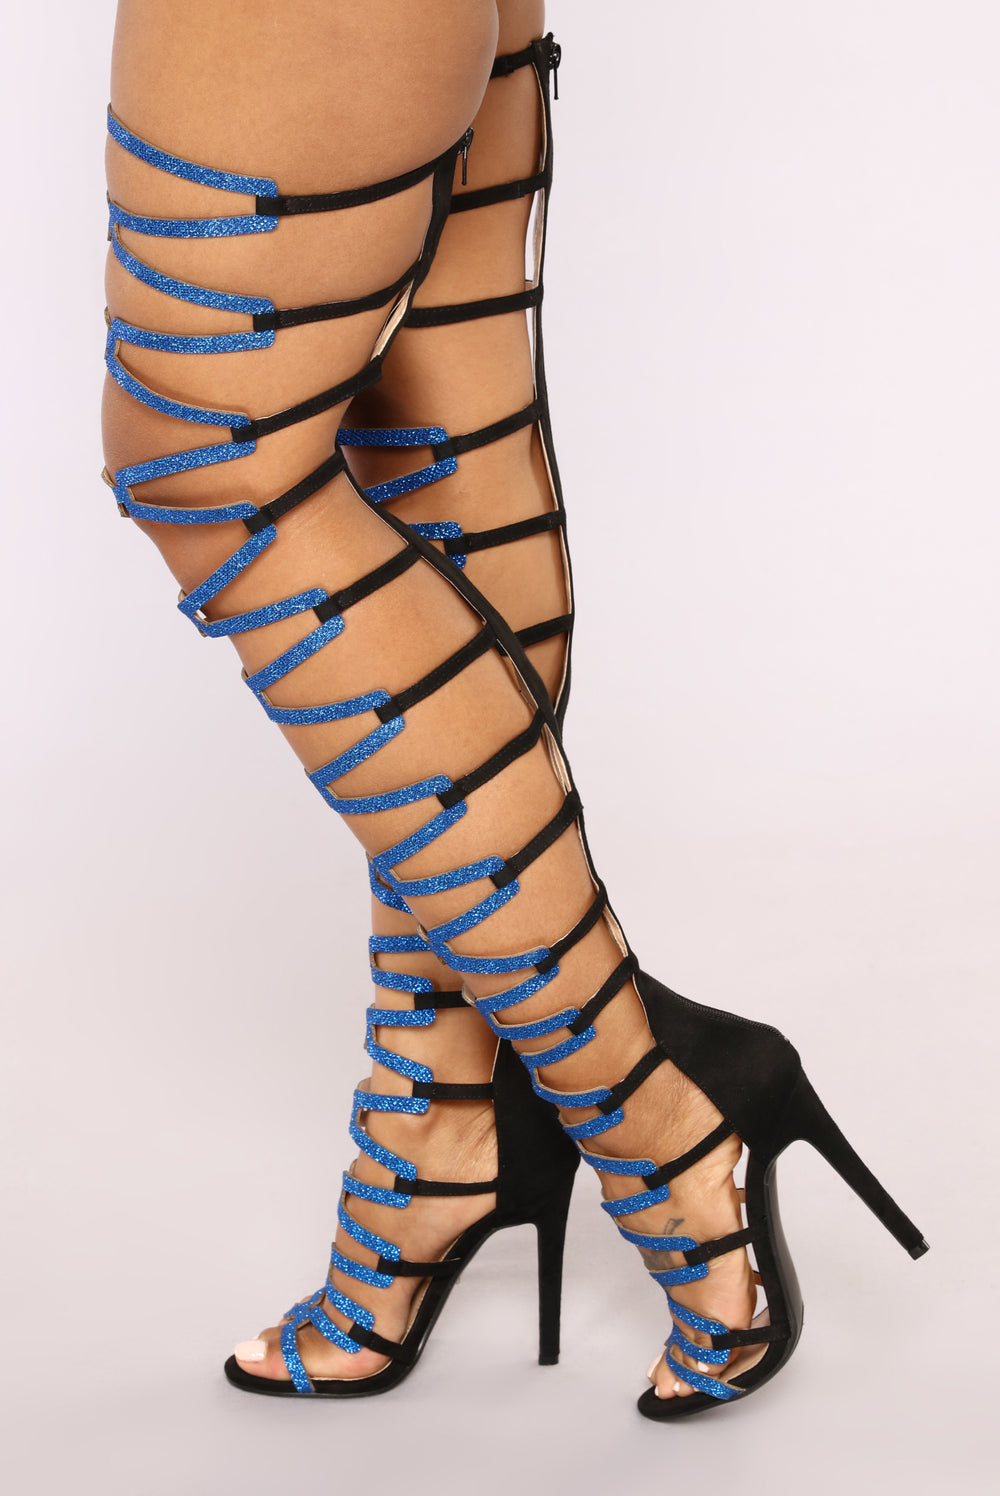 The Business Heeled Sandal - Black/Blue